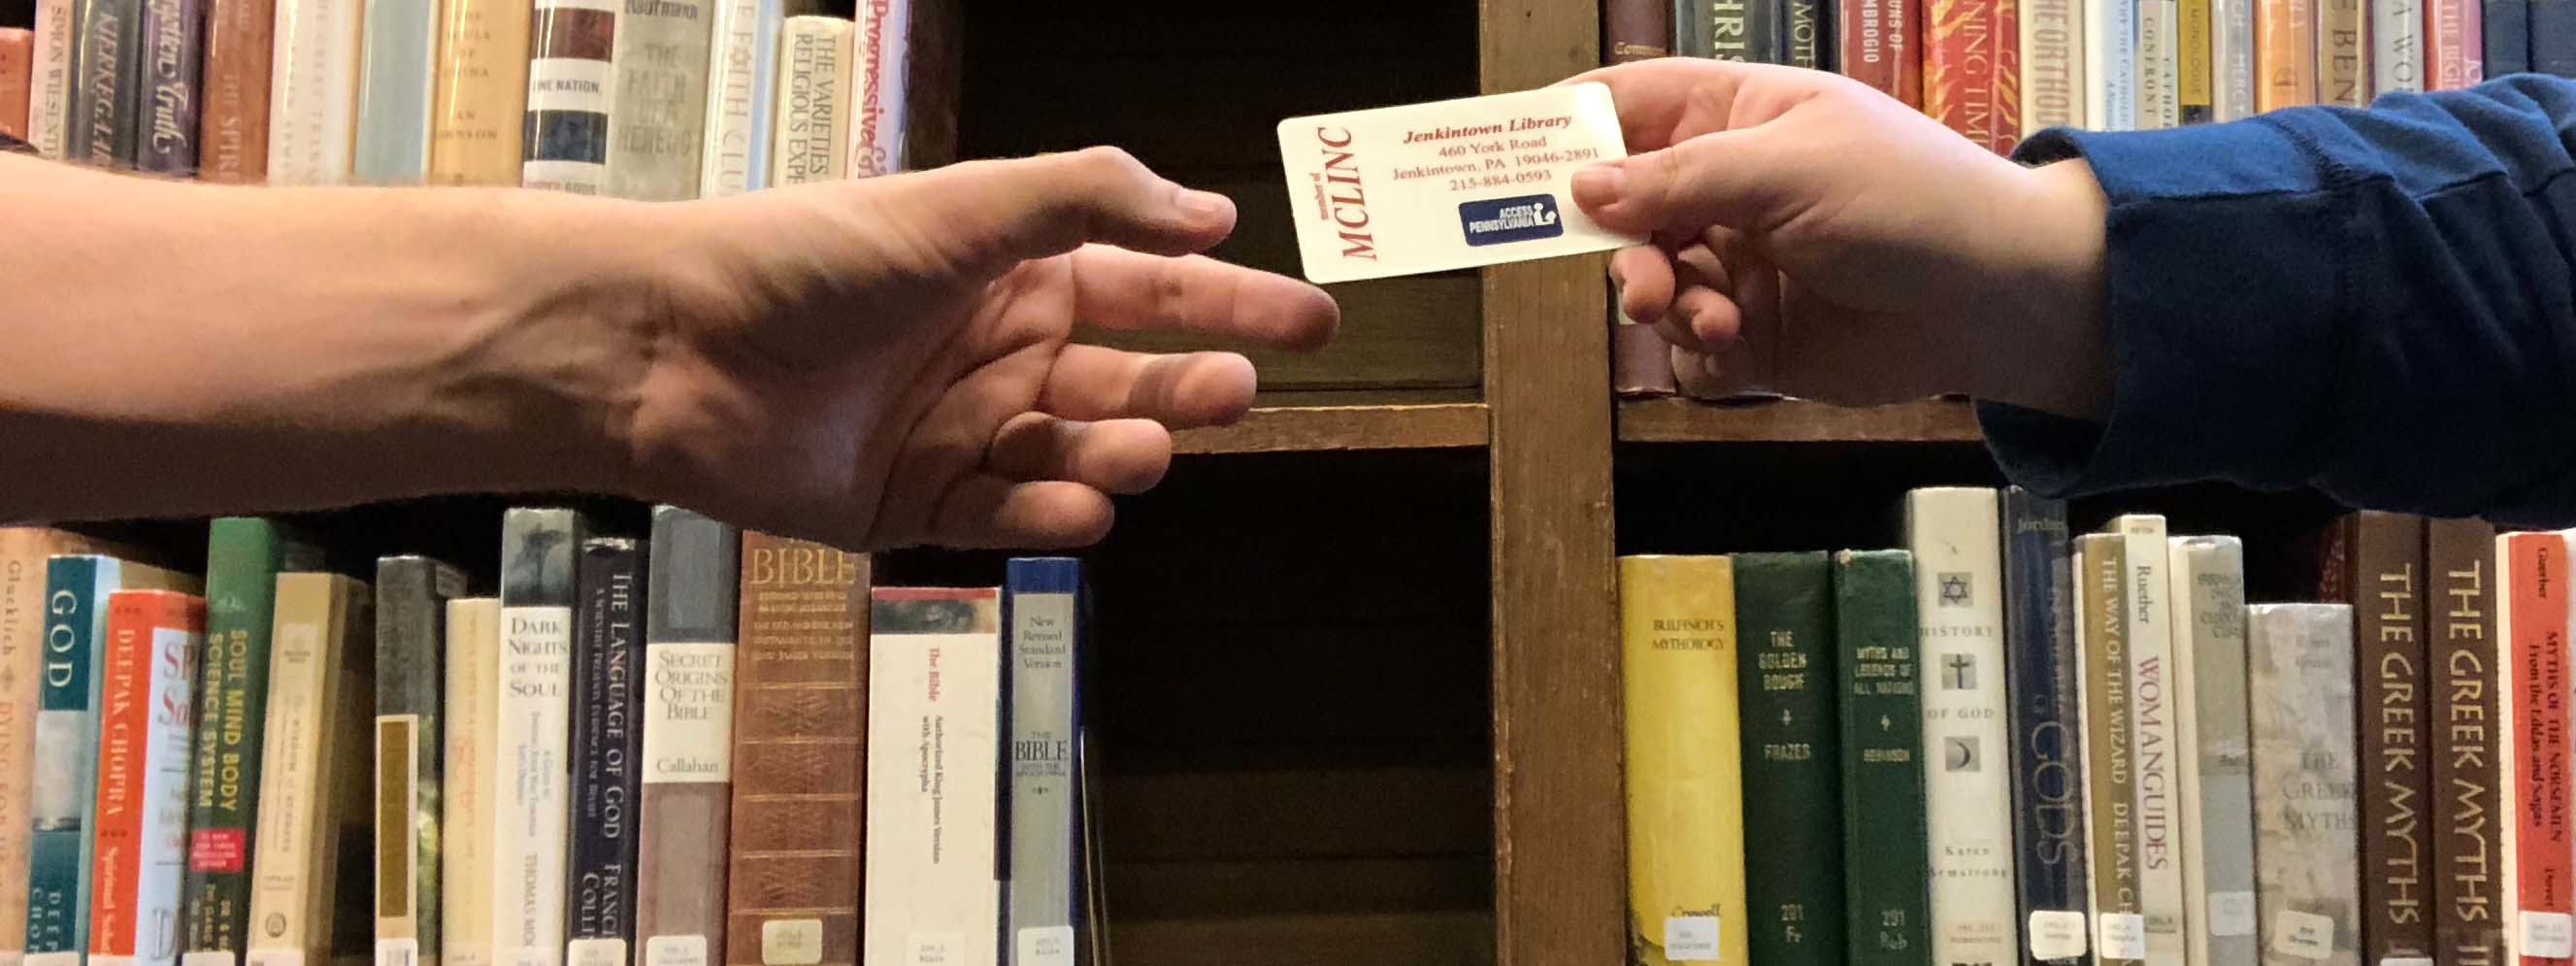 a hand reaching toward a library card being held out